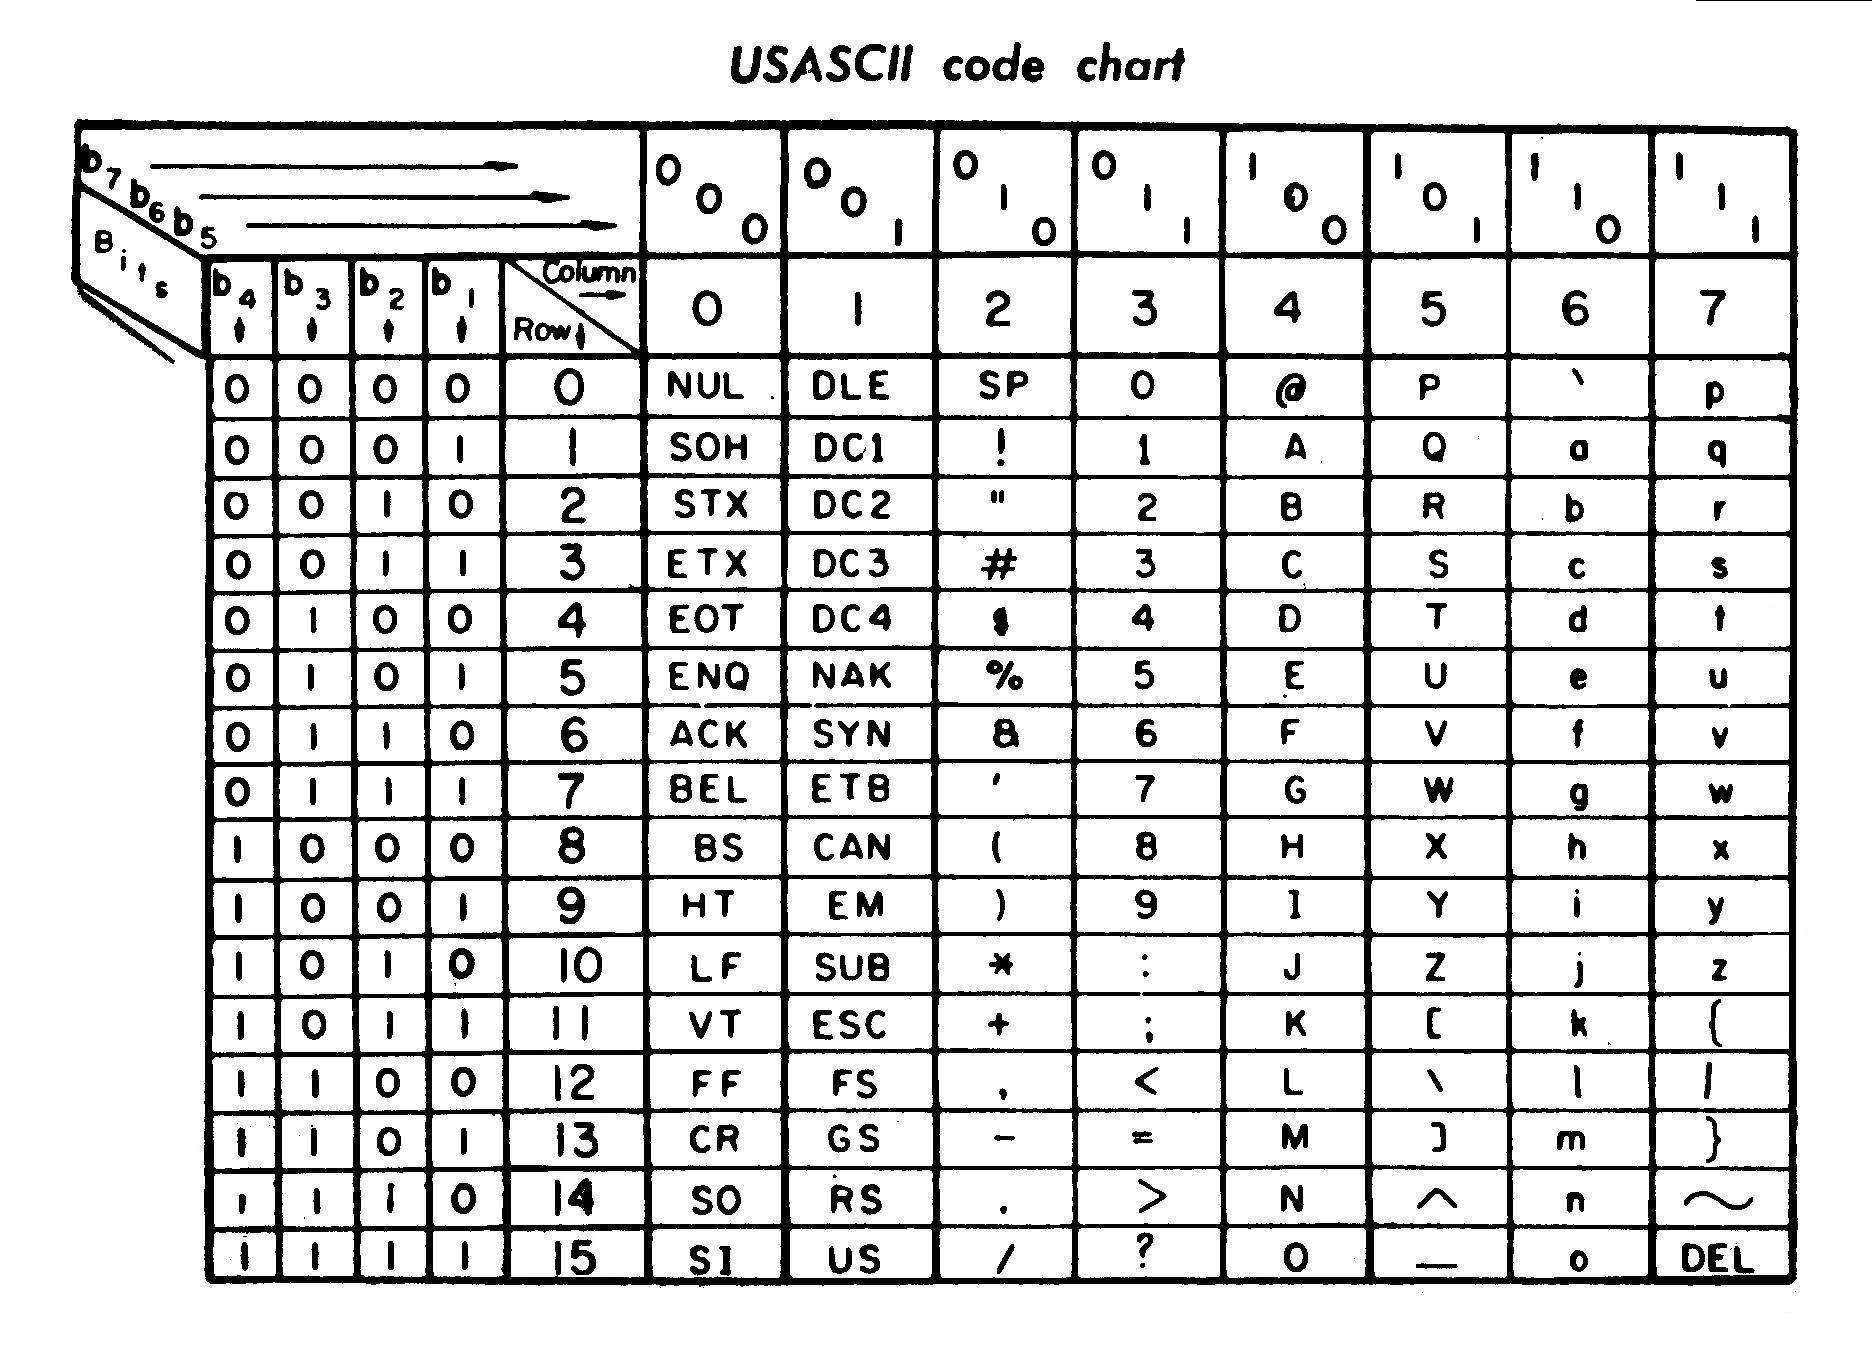 Fileascii code chart quick ref cardg wikimedia commons fileascii code chart quick ref cardg nvjuhfo Choice Image